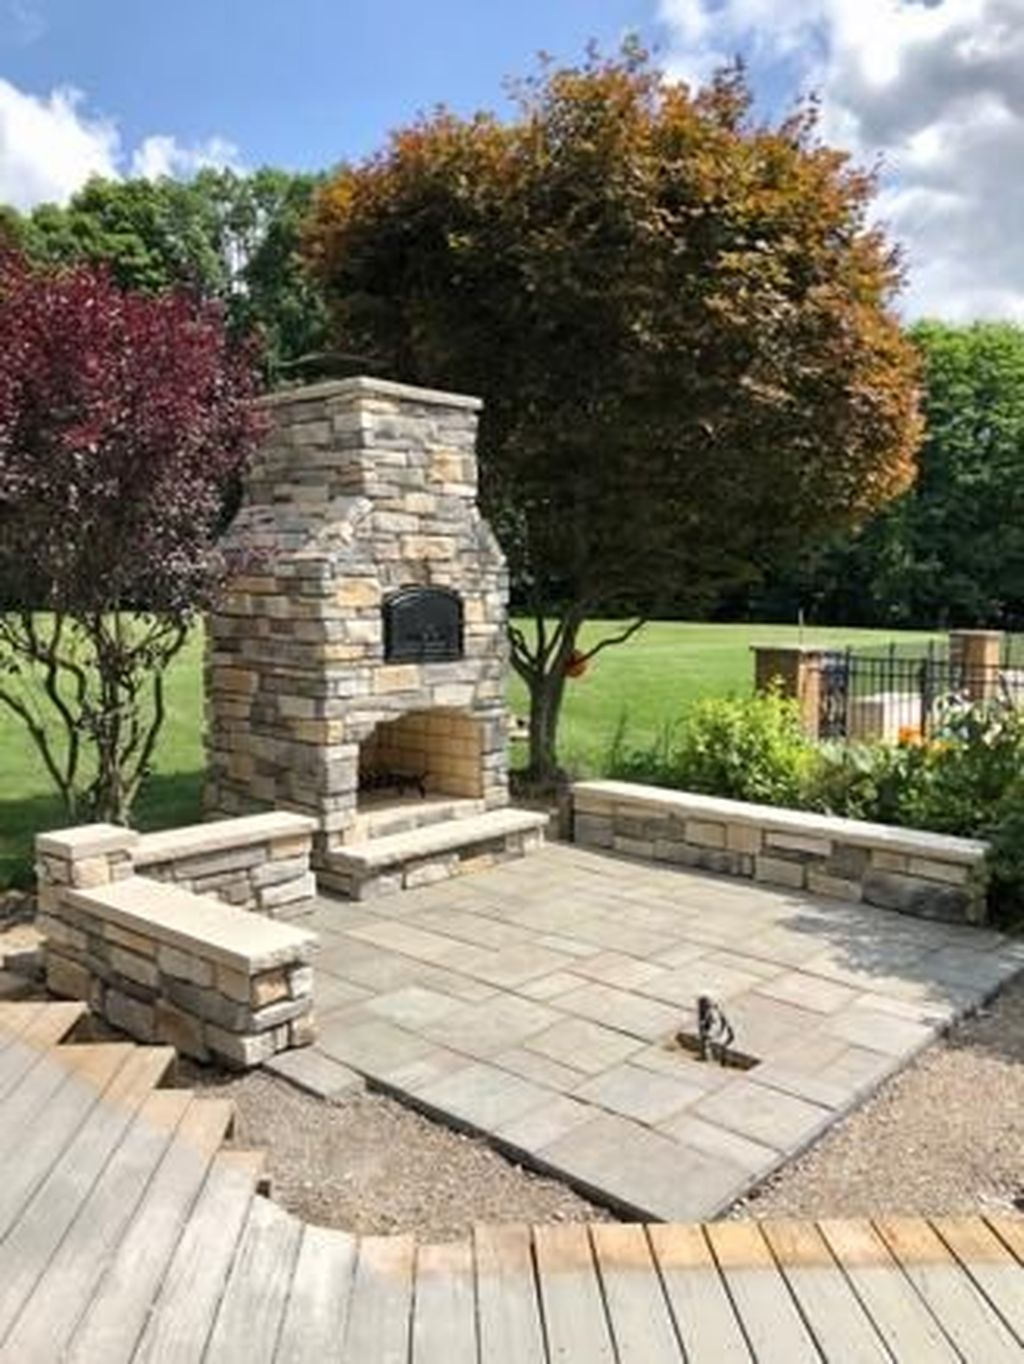 40 Admirable Outdoor Fireplace Designs Ideas To Beautify Your Backyard Trendehouse Outdoor Fireplace Designs Build Outdoor Fireplace Backyard Fireplace